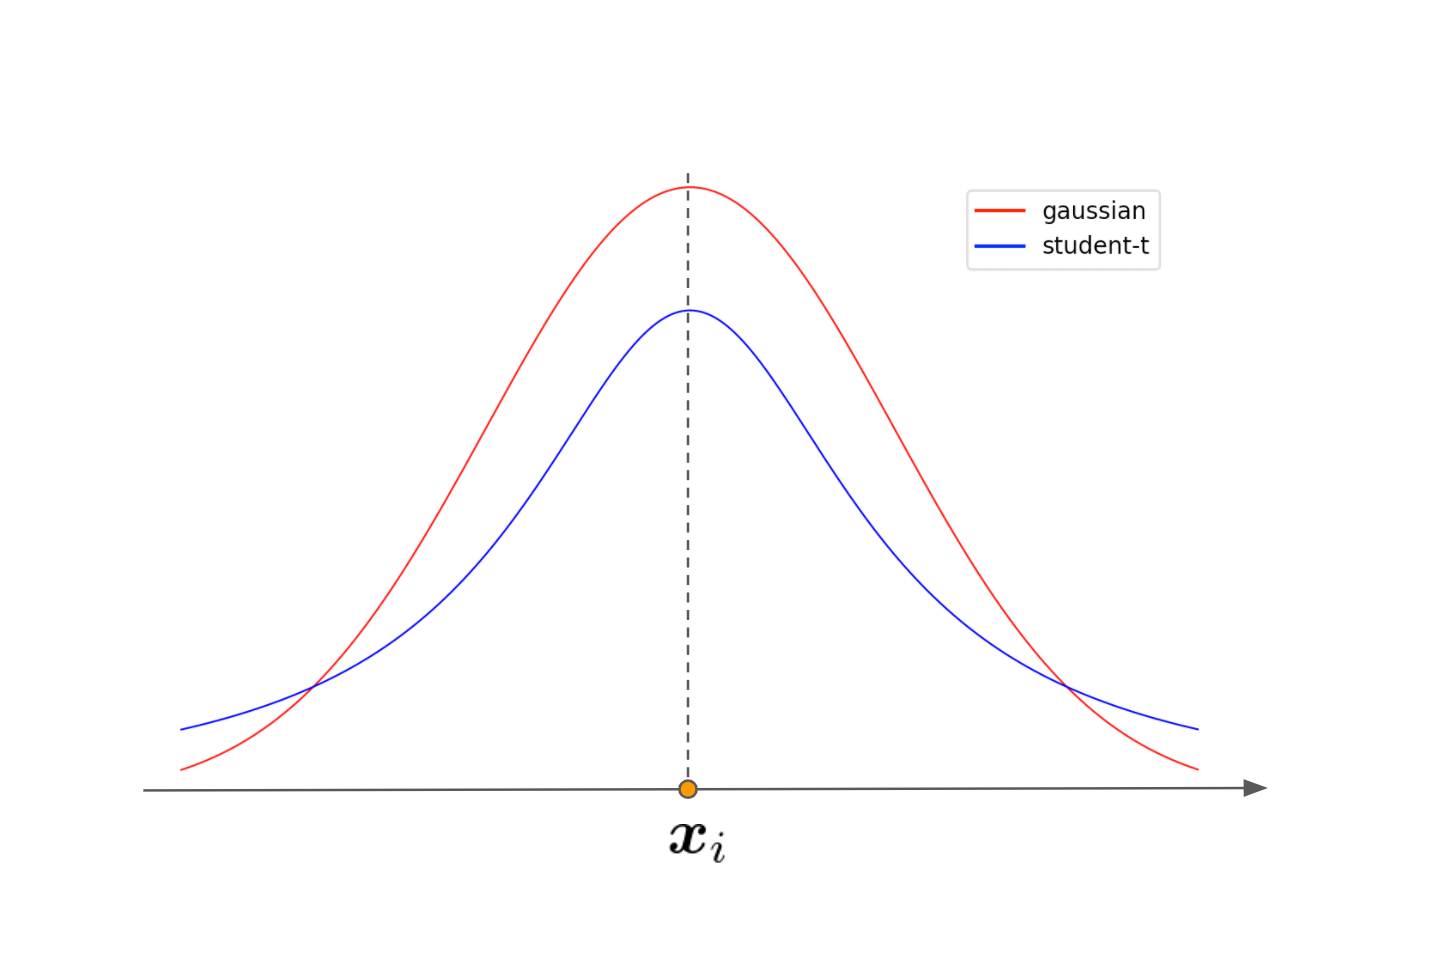 gaussian_student-t.png